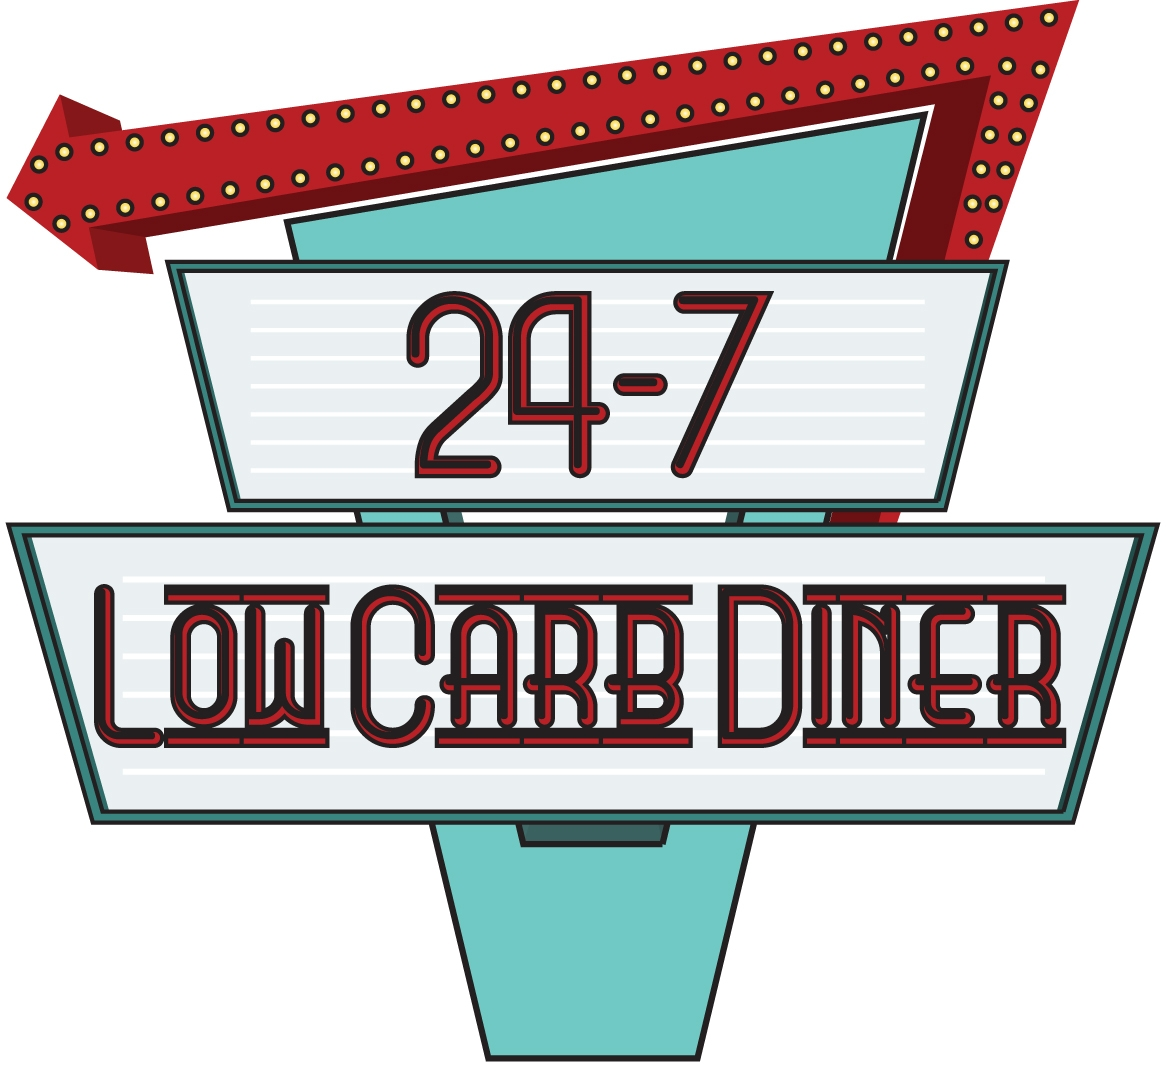 14 Kb Jpeg Clipart Picture Of A Retro Diner Sign Http Www Clipartguide